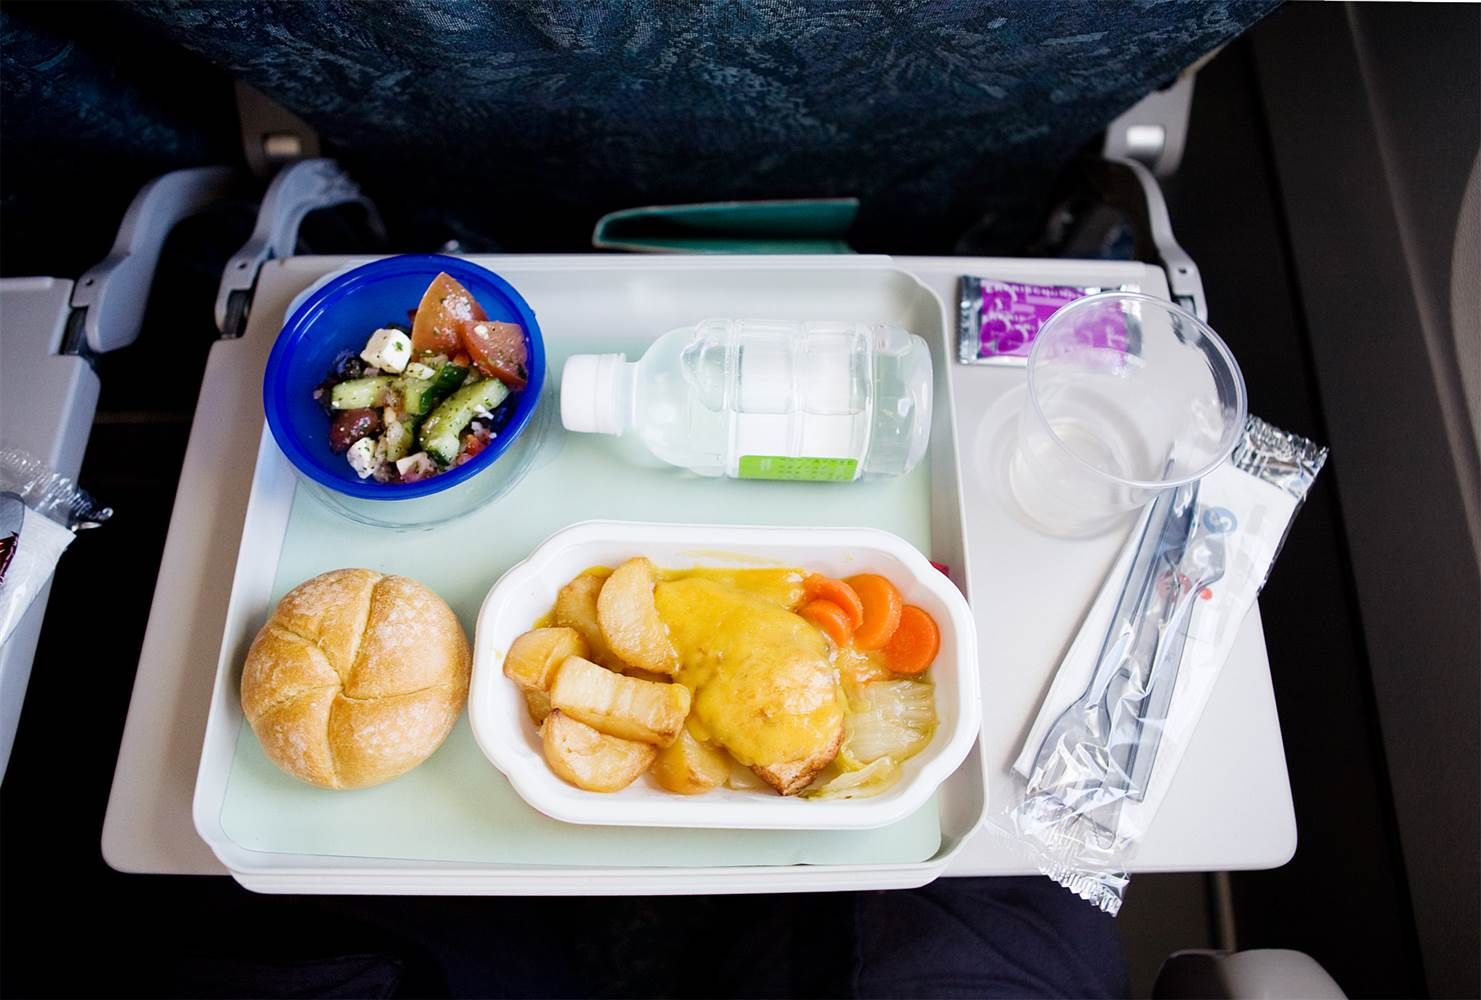 The atmosphere in an airline cabin reduces your ability to detect these tastes by about 30%. Most affected is our ability to taste sweet and salty foods. // Image via NBC